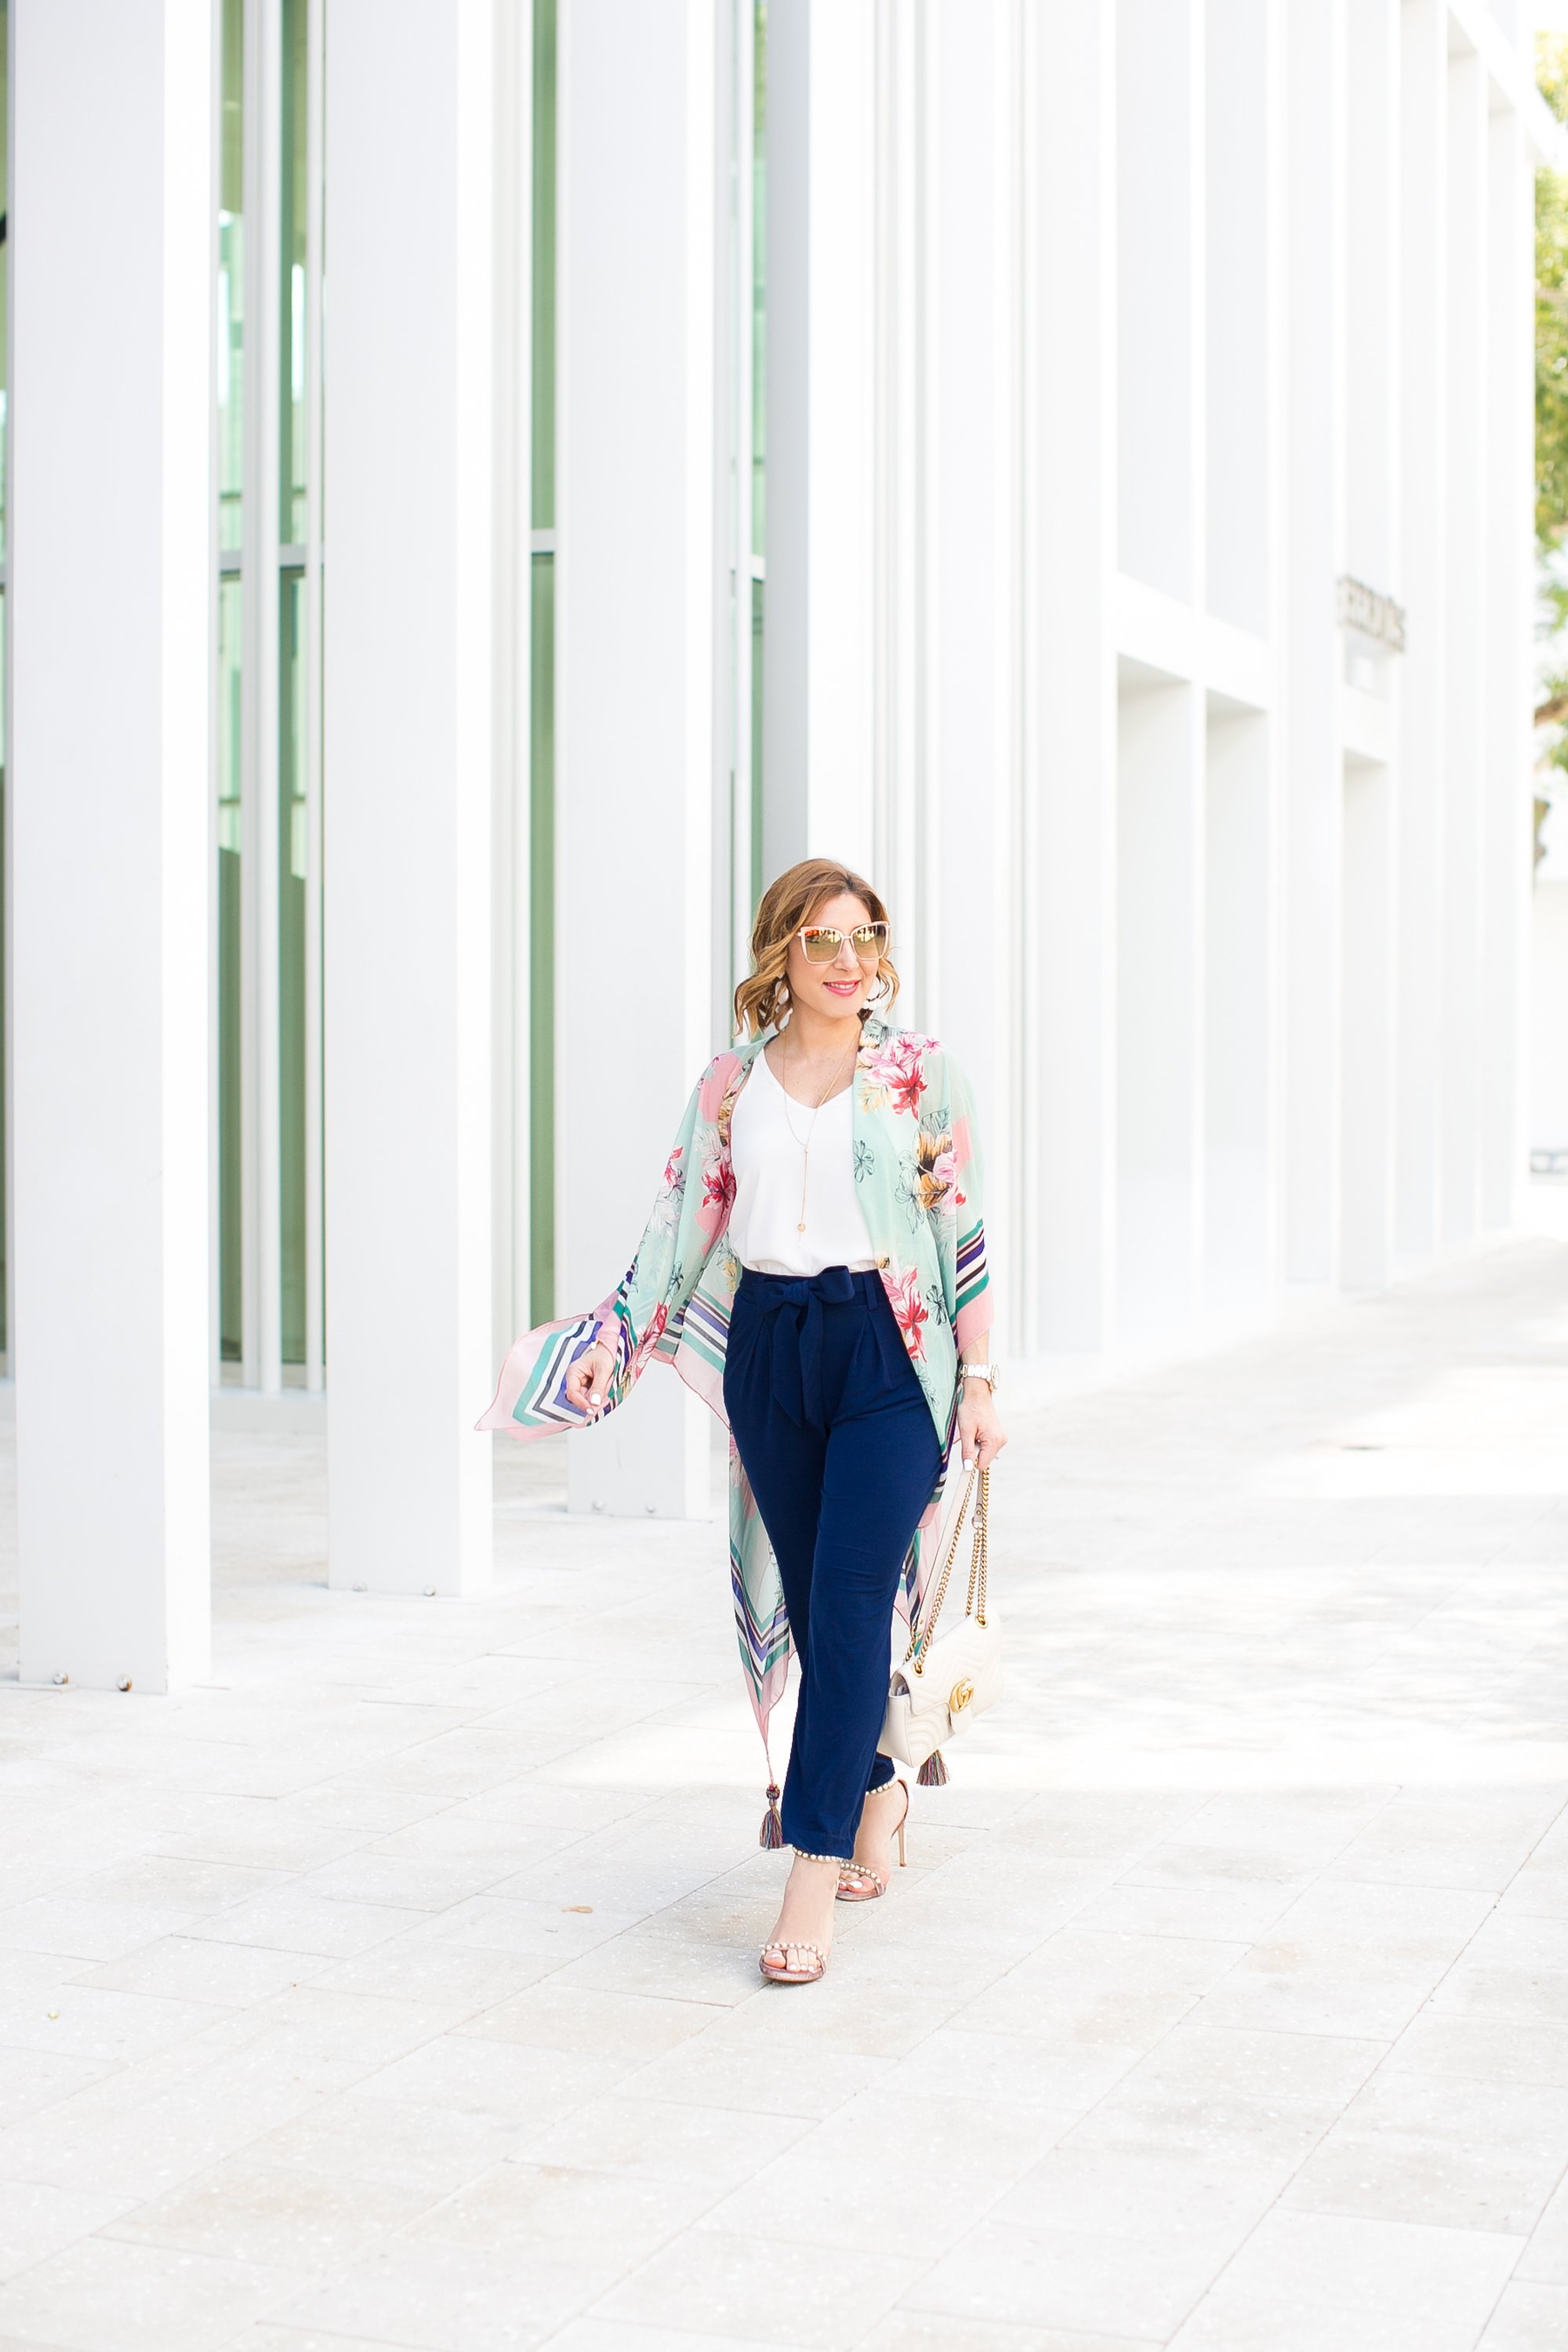 Blame it on Mei, @blameitonmei, Miami Fashion Blogger, how to style wear floral kimono